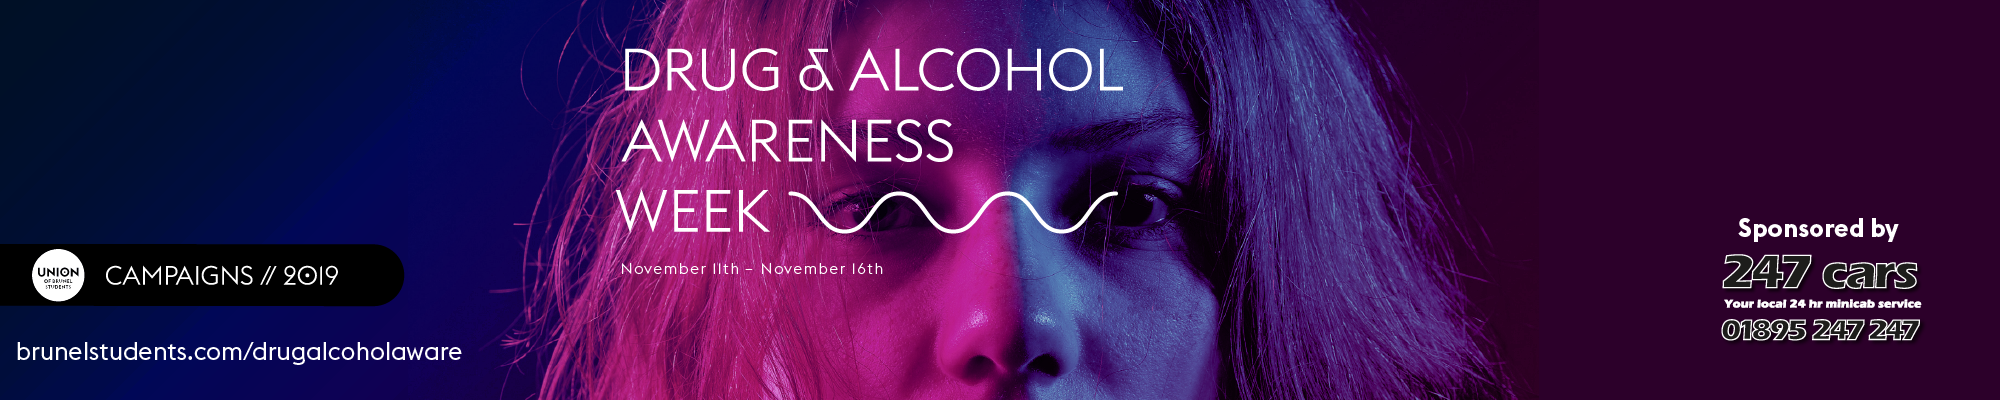 Drug & Alcohol Awareness Week